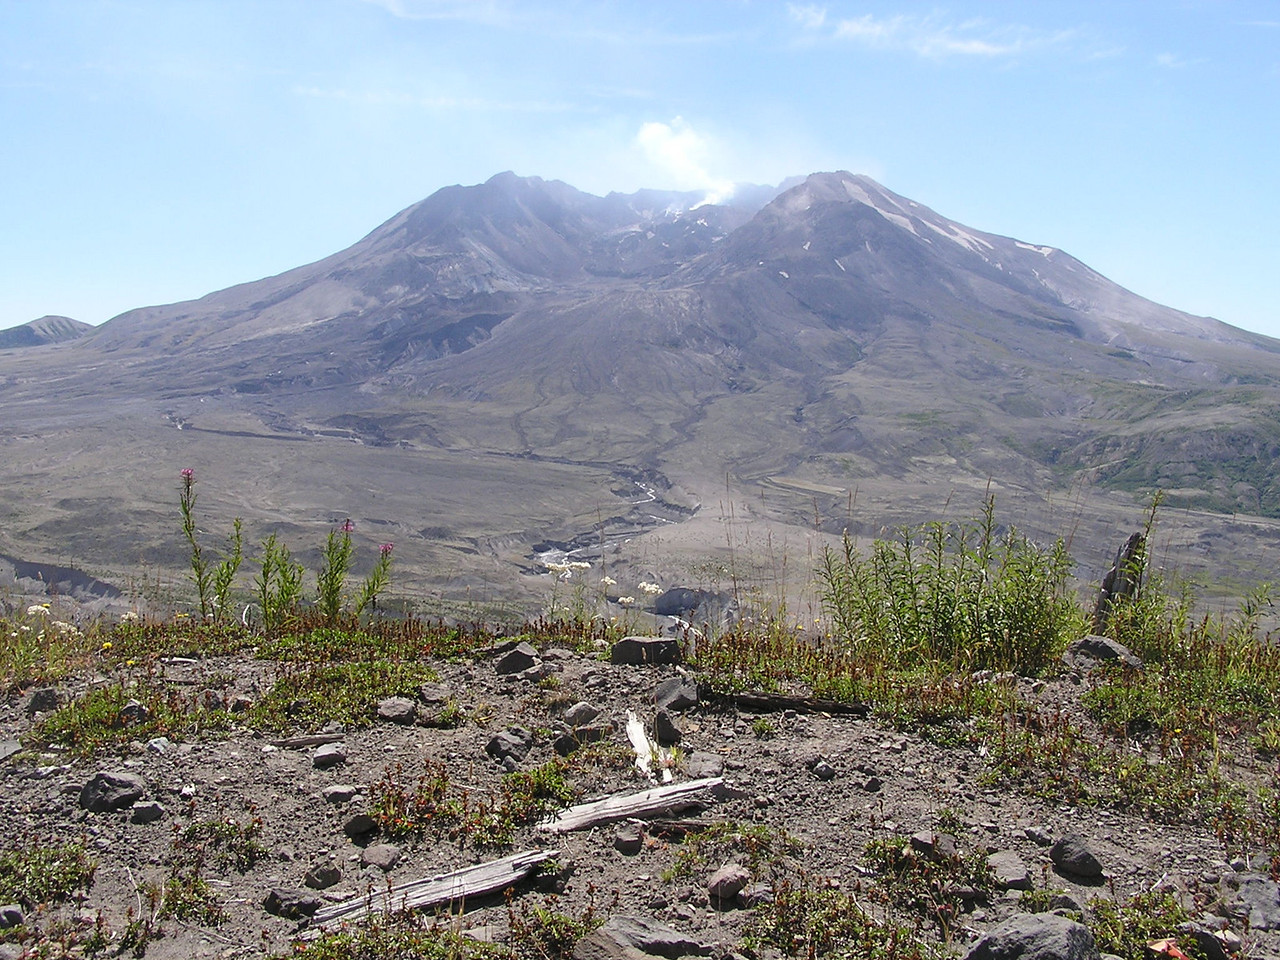 Mt St Helens on Sept 1, 2007, taken from the Johnston Ridge Observatory.  Looking south at the crater showing that the north flank of the mountain is gone after the eruption of May 18, 1980.